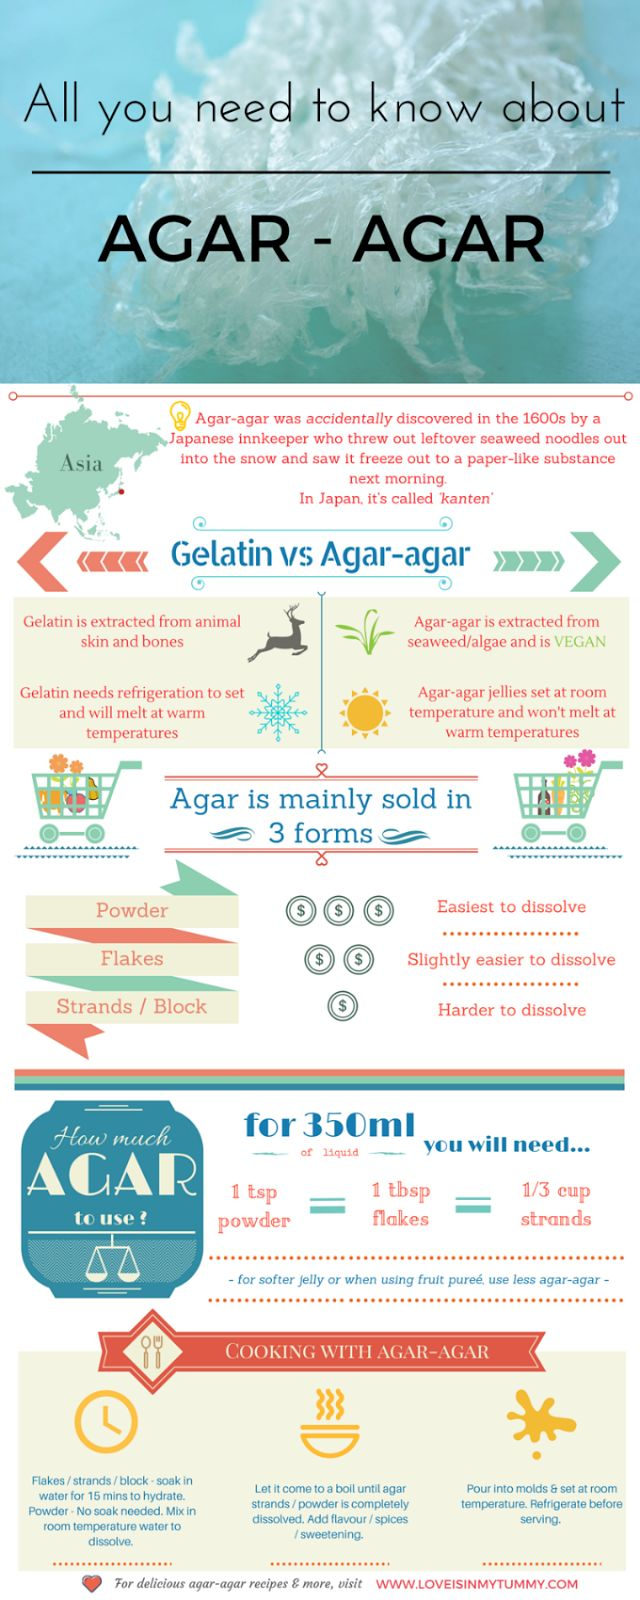 All you need to know about Agar Agar is in this infographic - Head over to the…